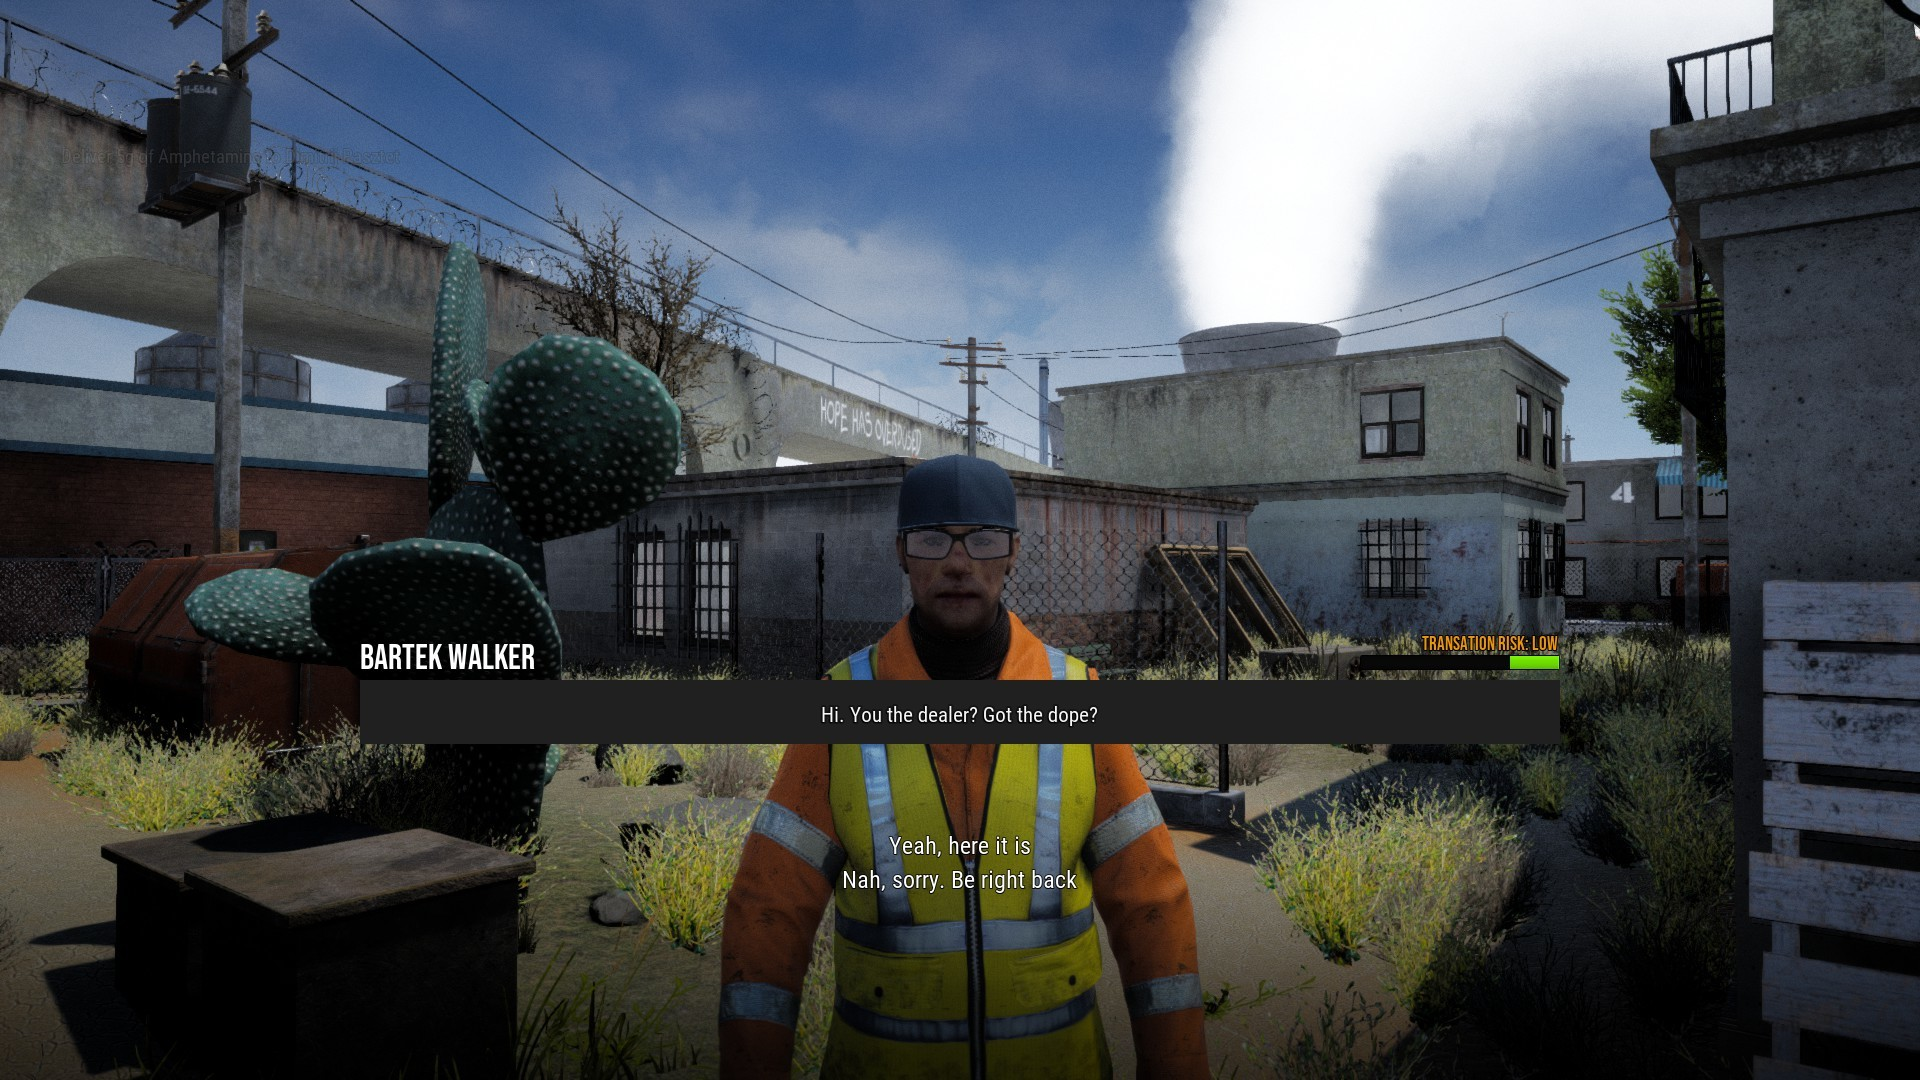 Dealing drugs in Drug Dealer simulator